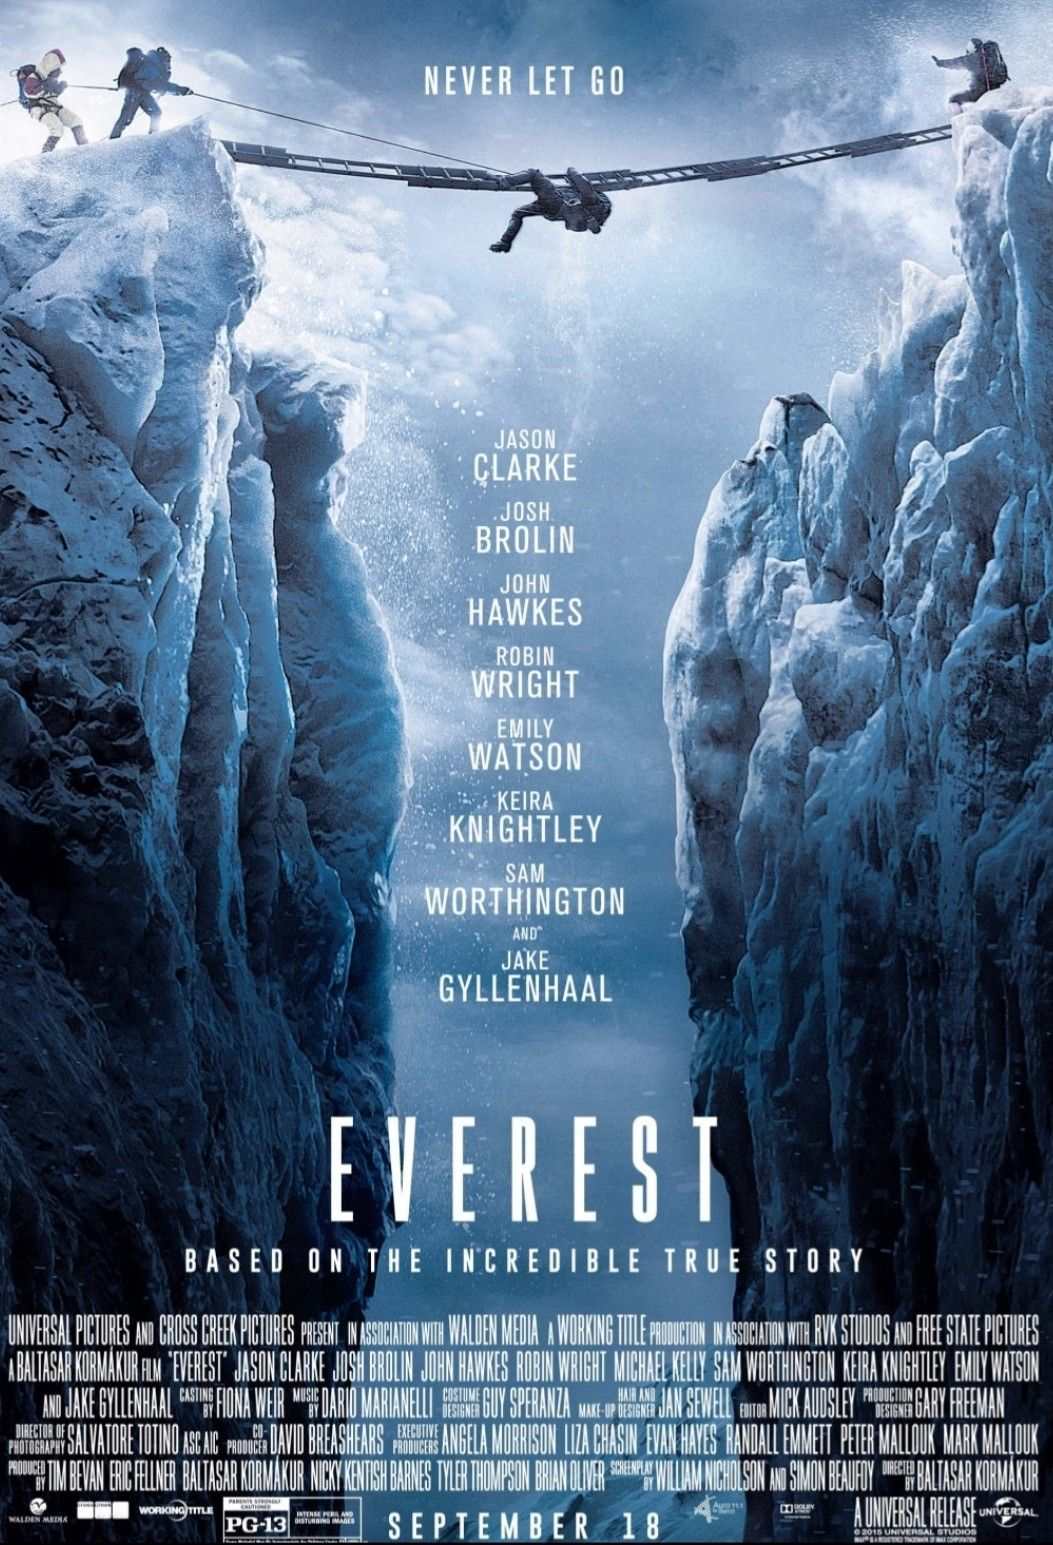 Everest 2015 ‧ Drama/Disaster Film Movie Poster The